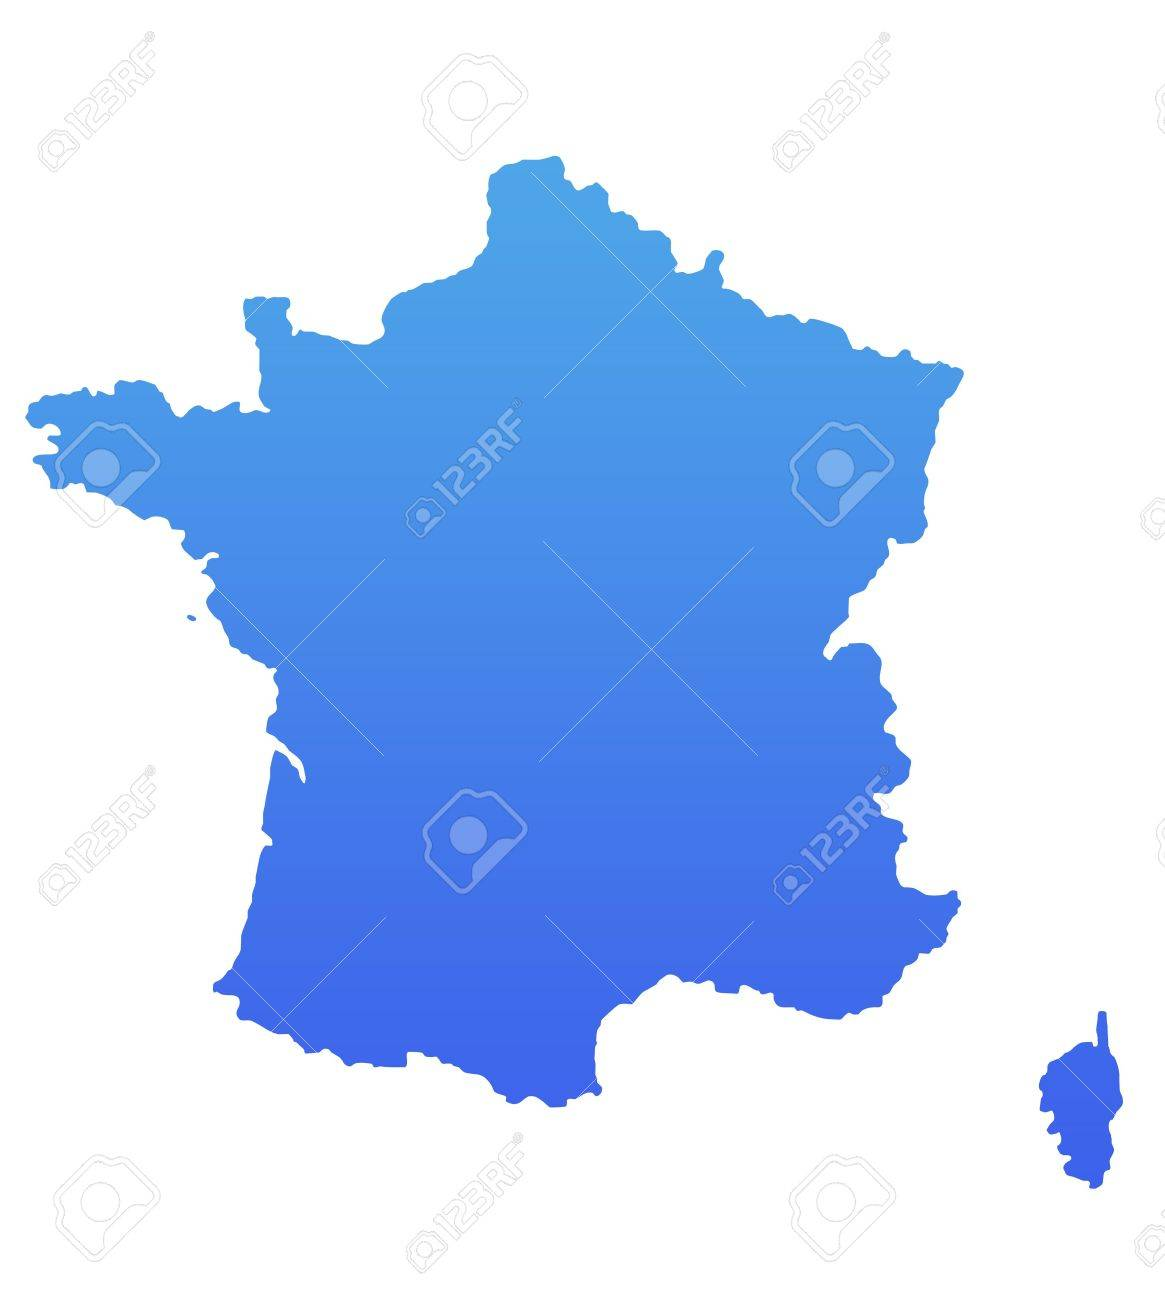 France map in gradient blue, isolated on white background. Stock Photo - 6779087